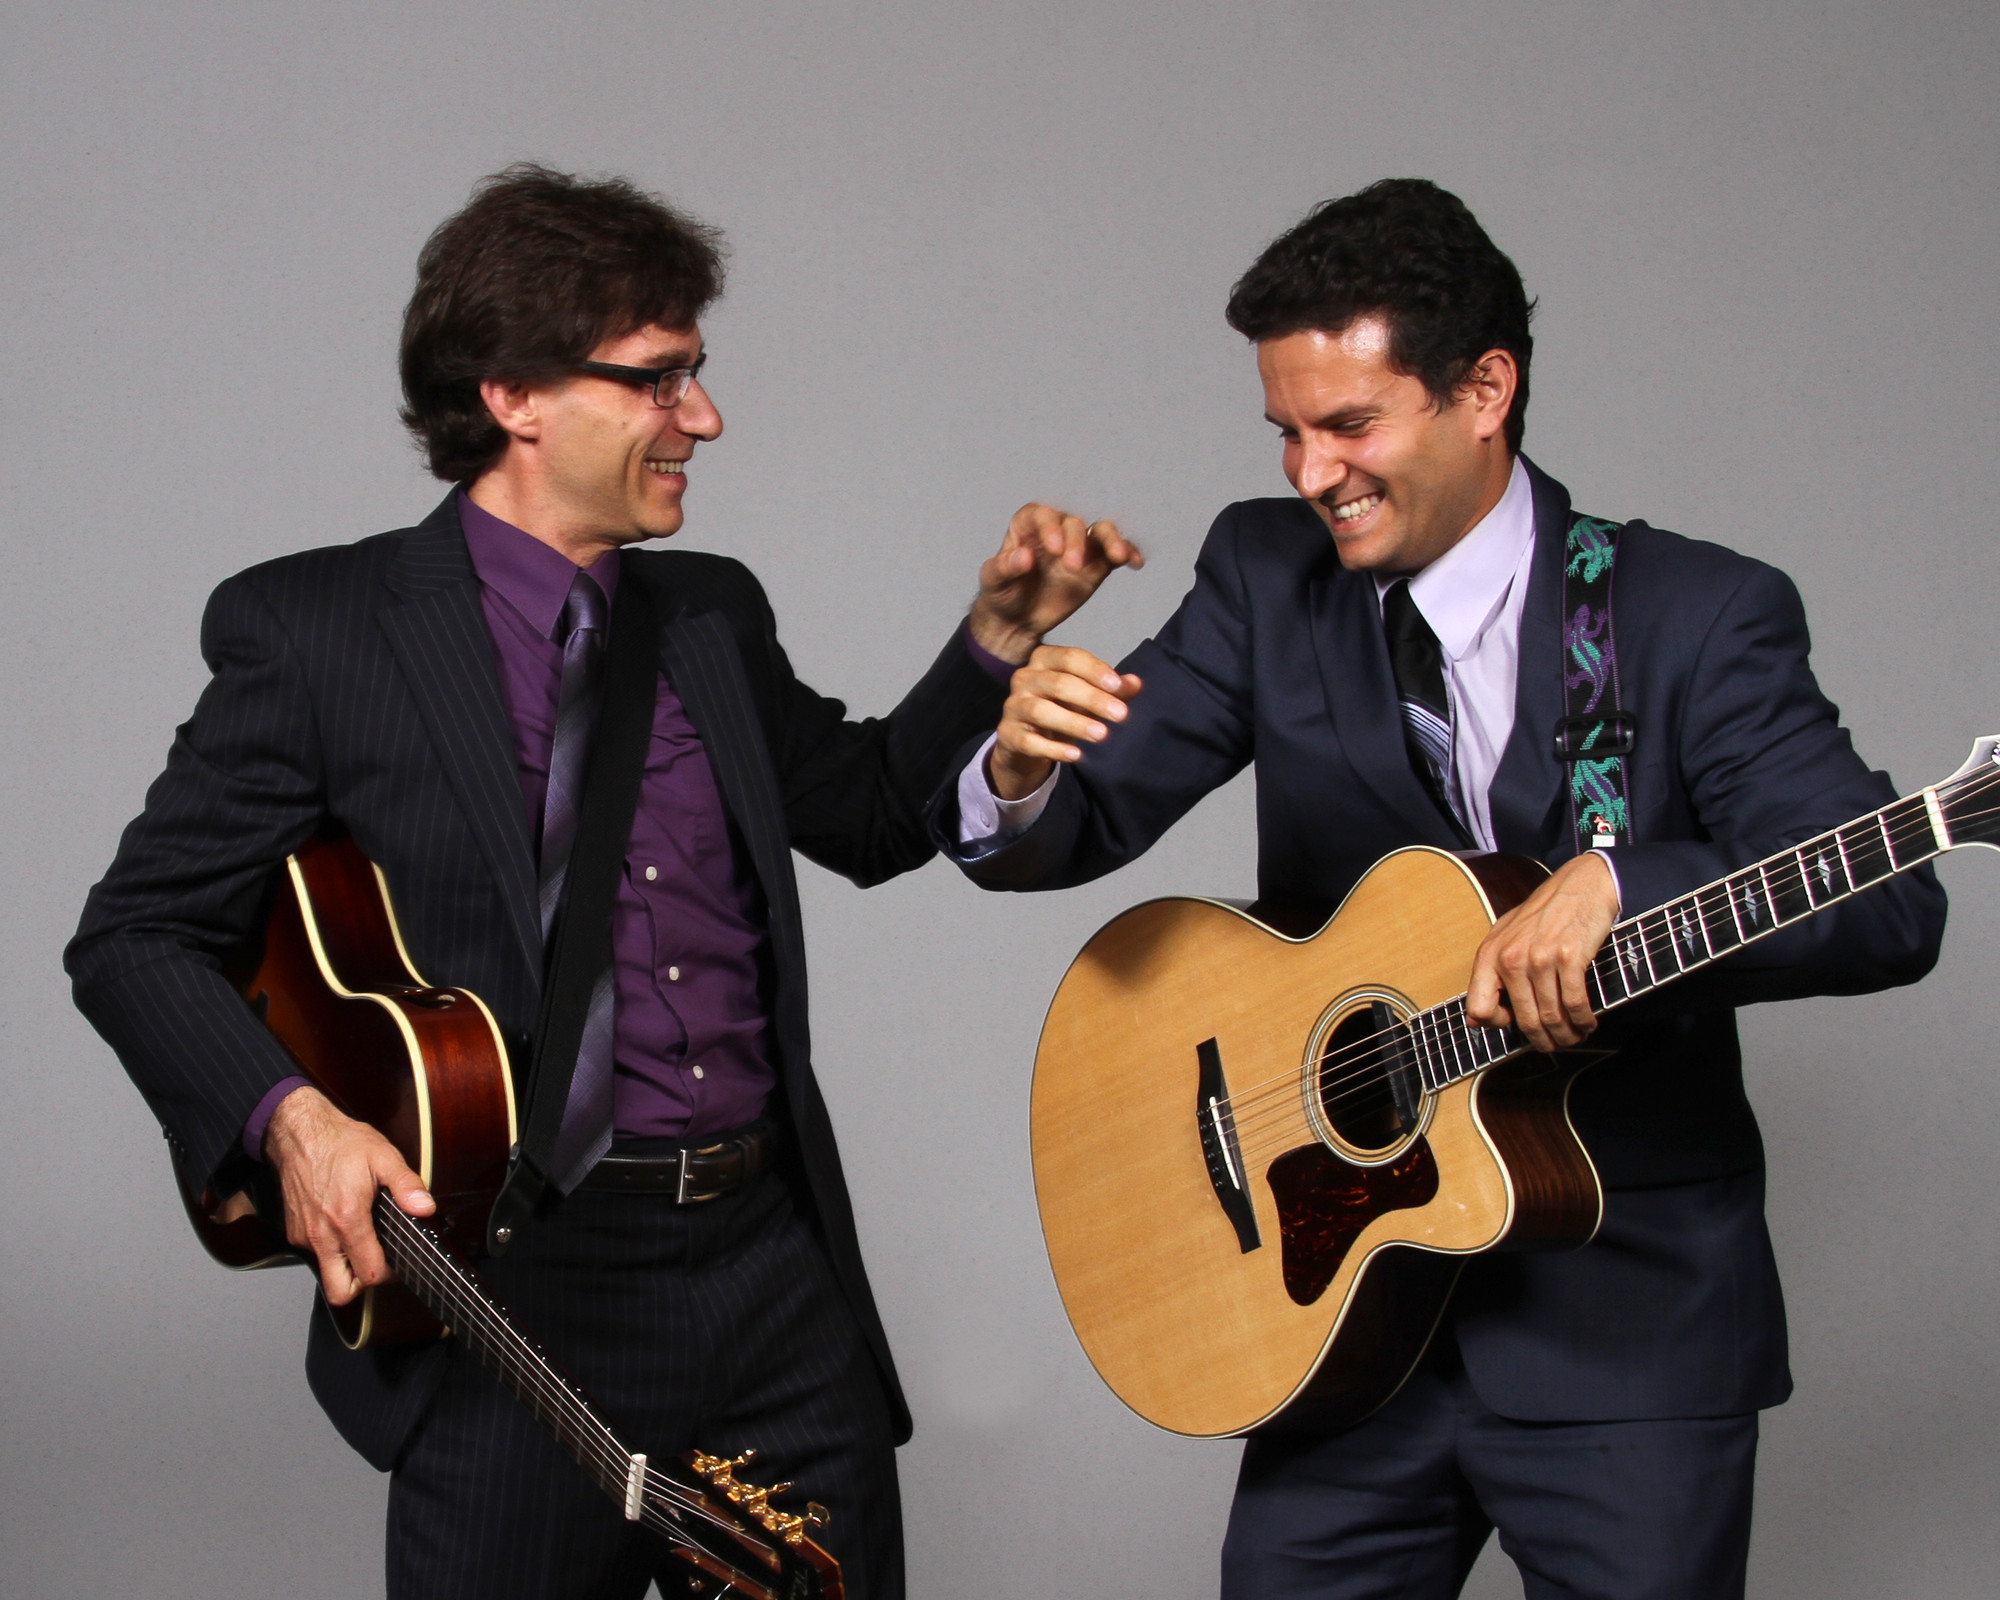 Renowned jazz guitarist Frank Vignola (left) demonstrates his musical versatility with Vinny Raniolo when the duo appears at the Long Beach Public Library on Sept. 21.